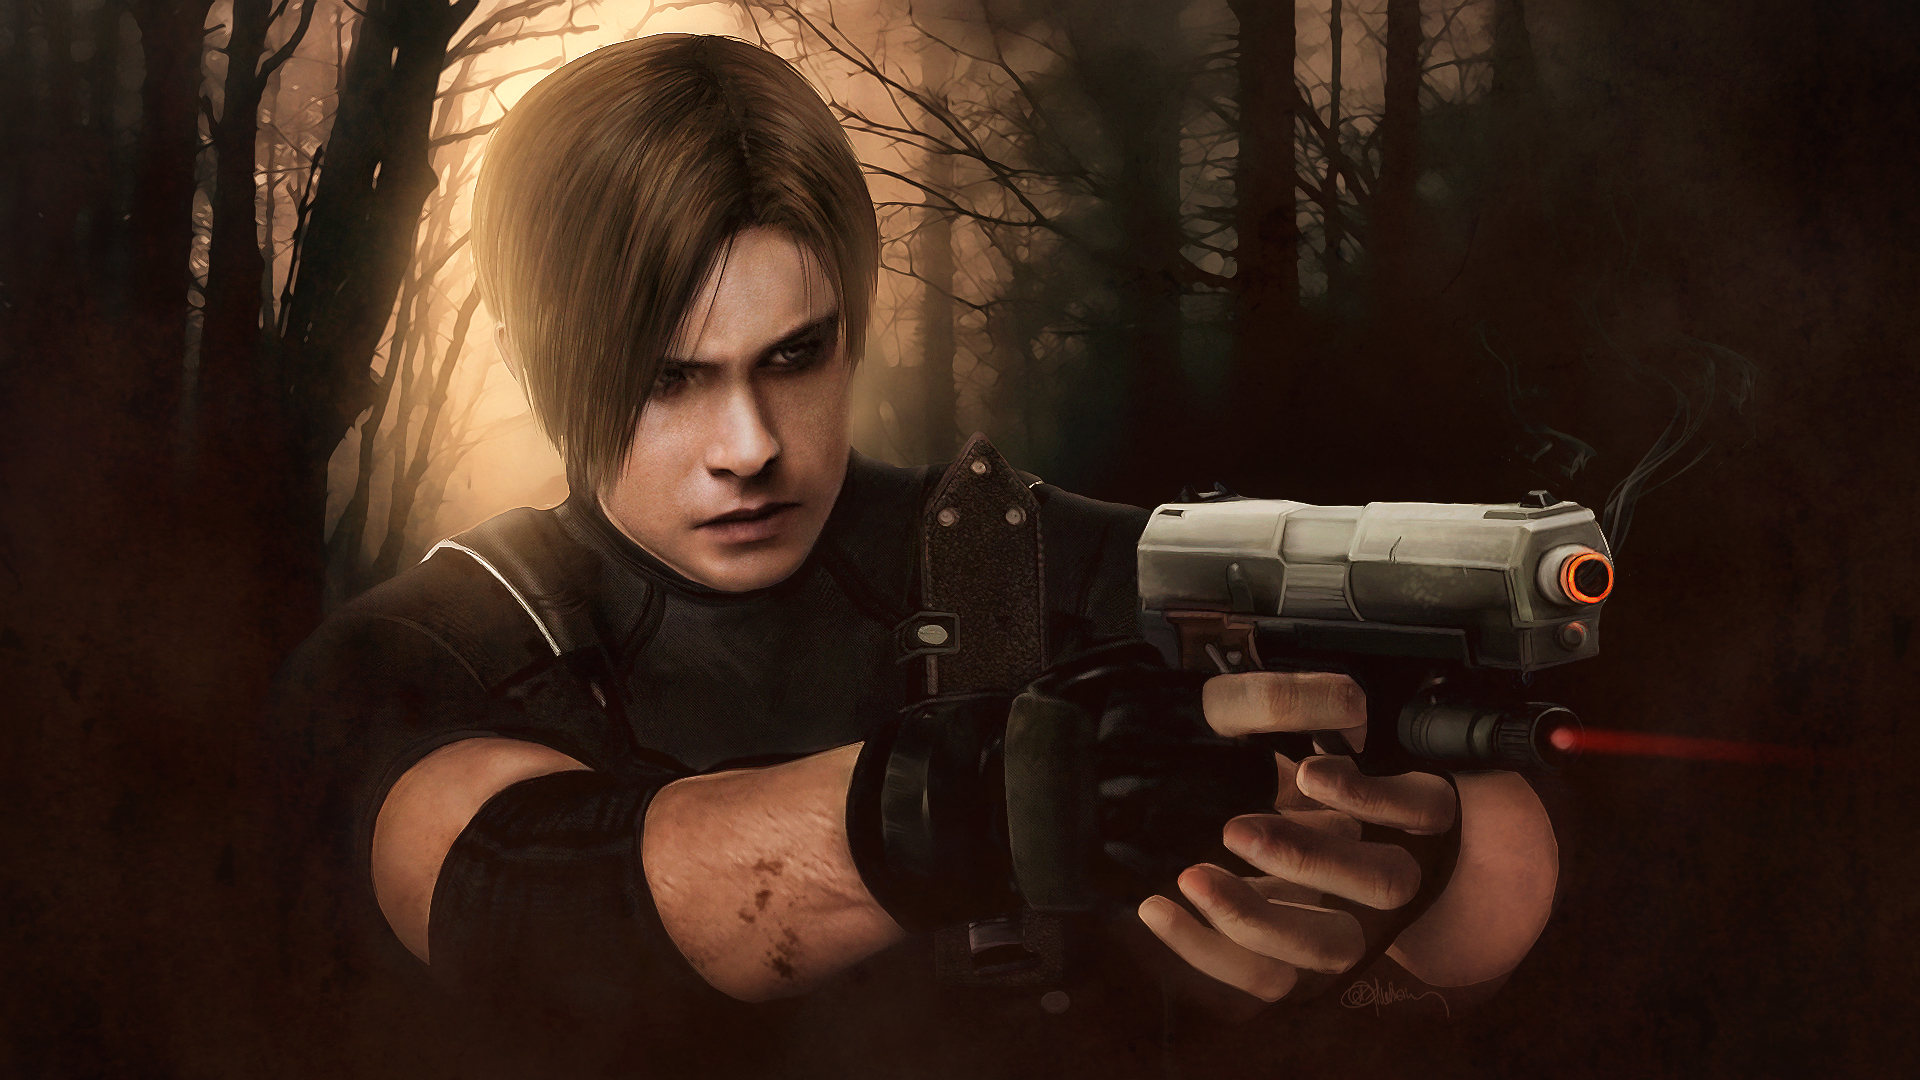 Resident Evil 4 Leon Kennedy Wallpaper By Push Pulse On Deviantart